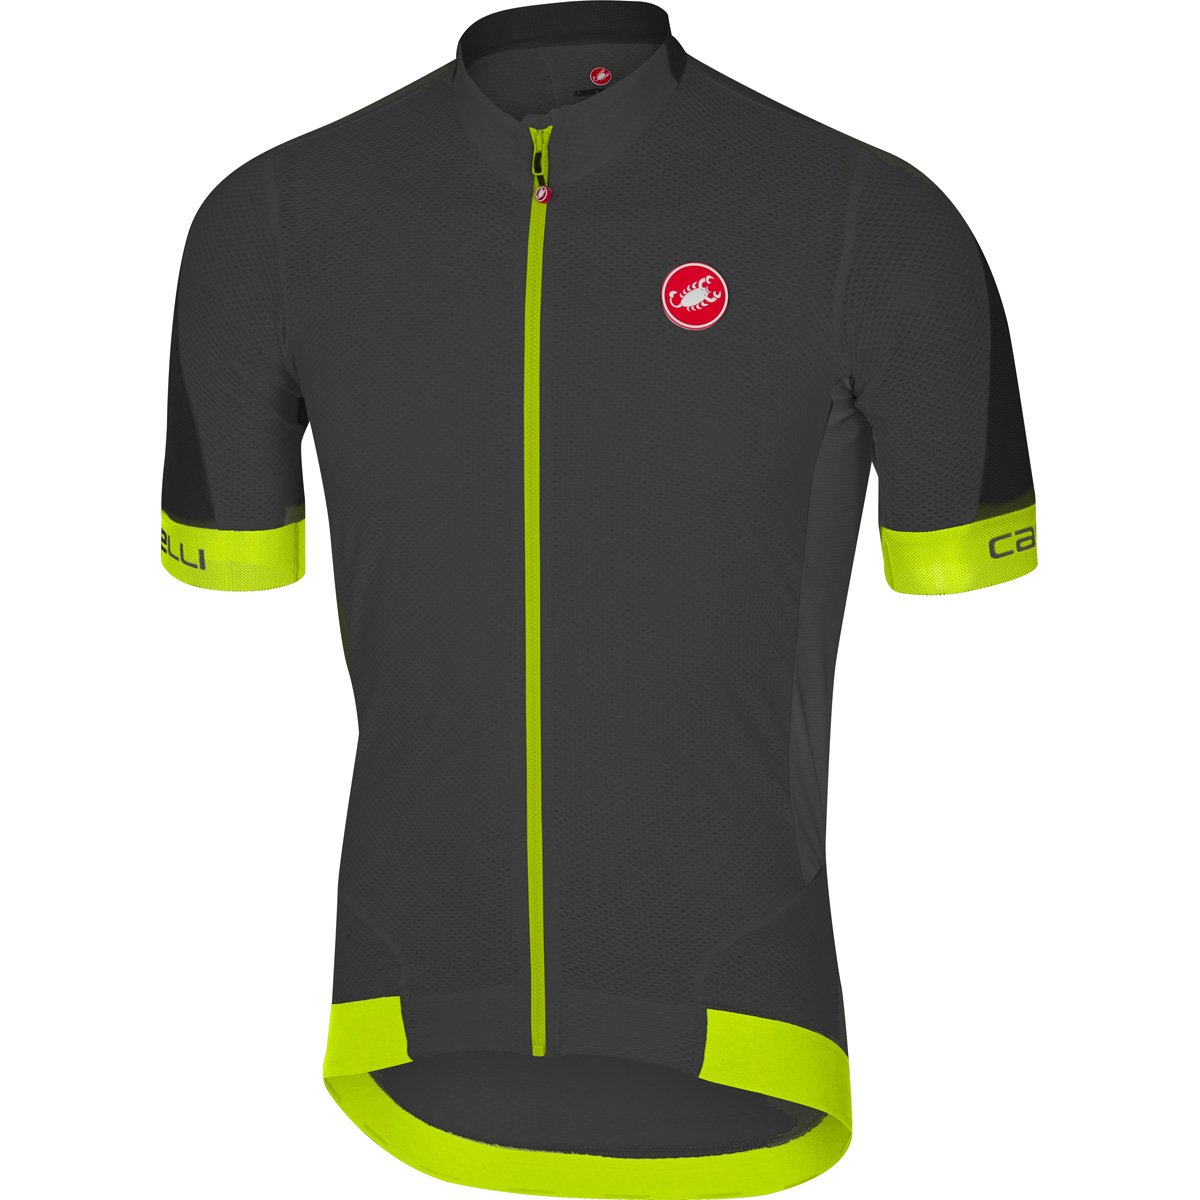 CastelliメンズVolata 2 Bike jersey fz B06XD512YC Medium|Anthracite/Yellow Fluo Anthracite/Yellow Fluo Medium